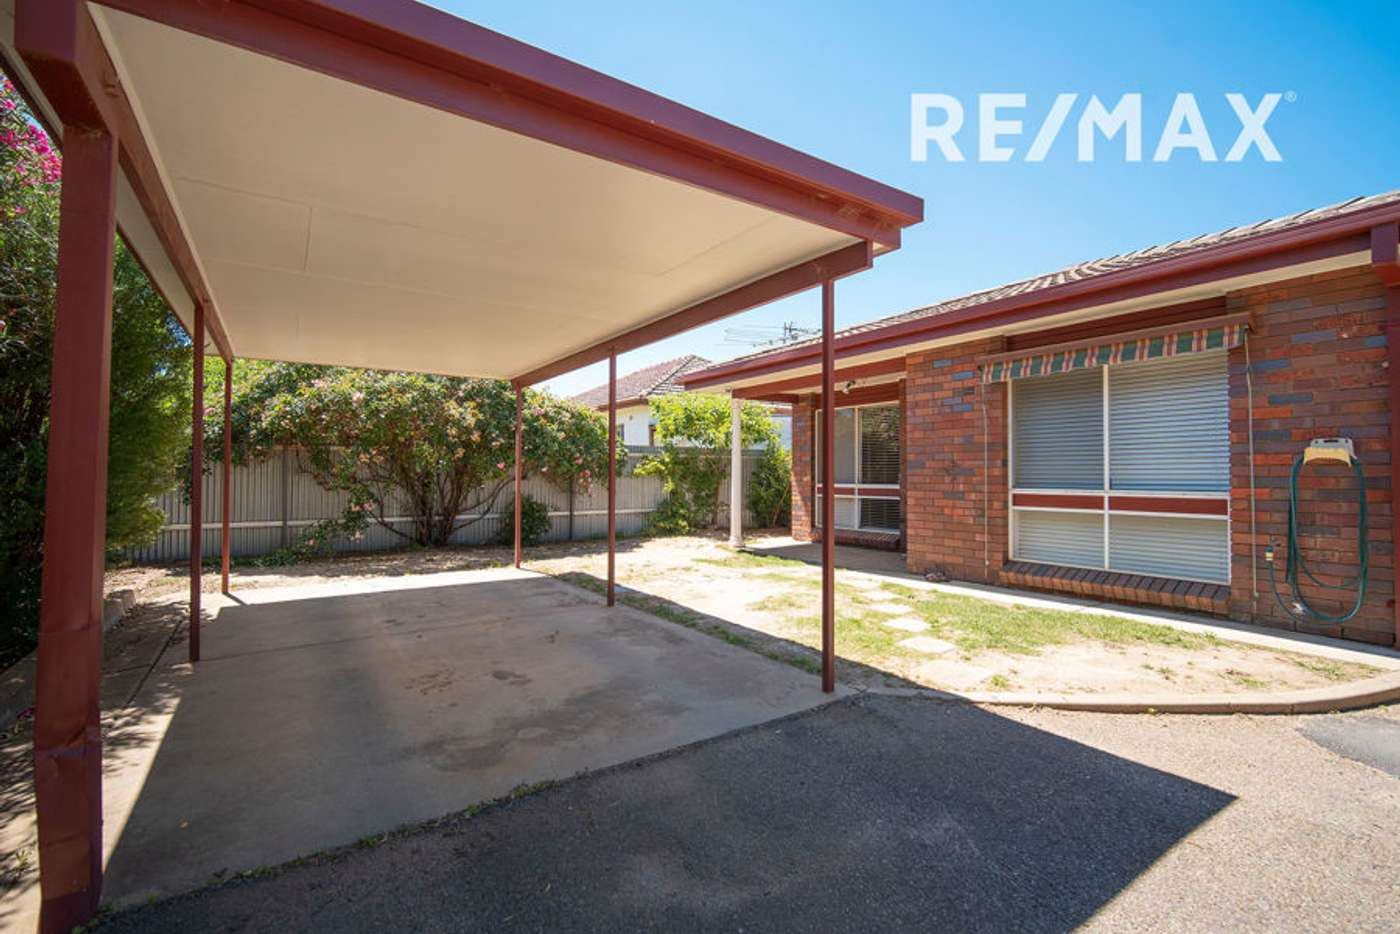 Main view of Homely house listing, 5/61 Beckwith Street, Wagga Wagga NSW 2650